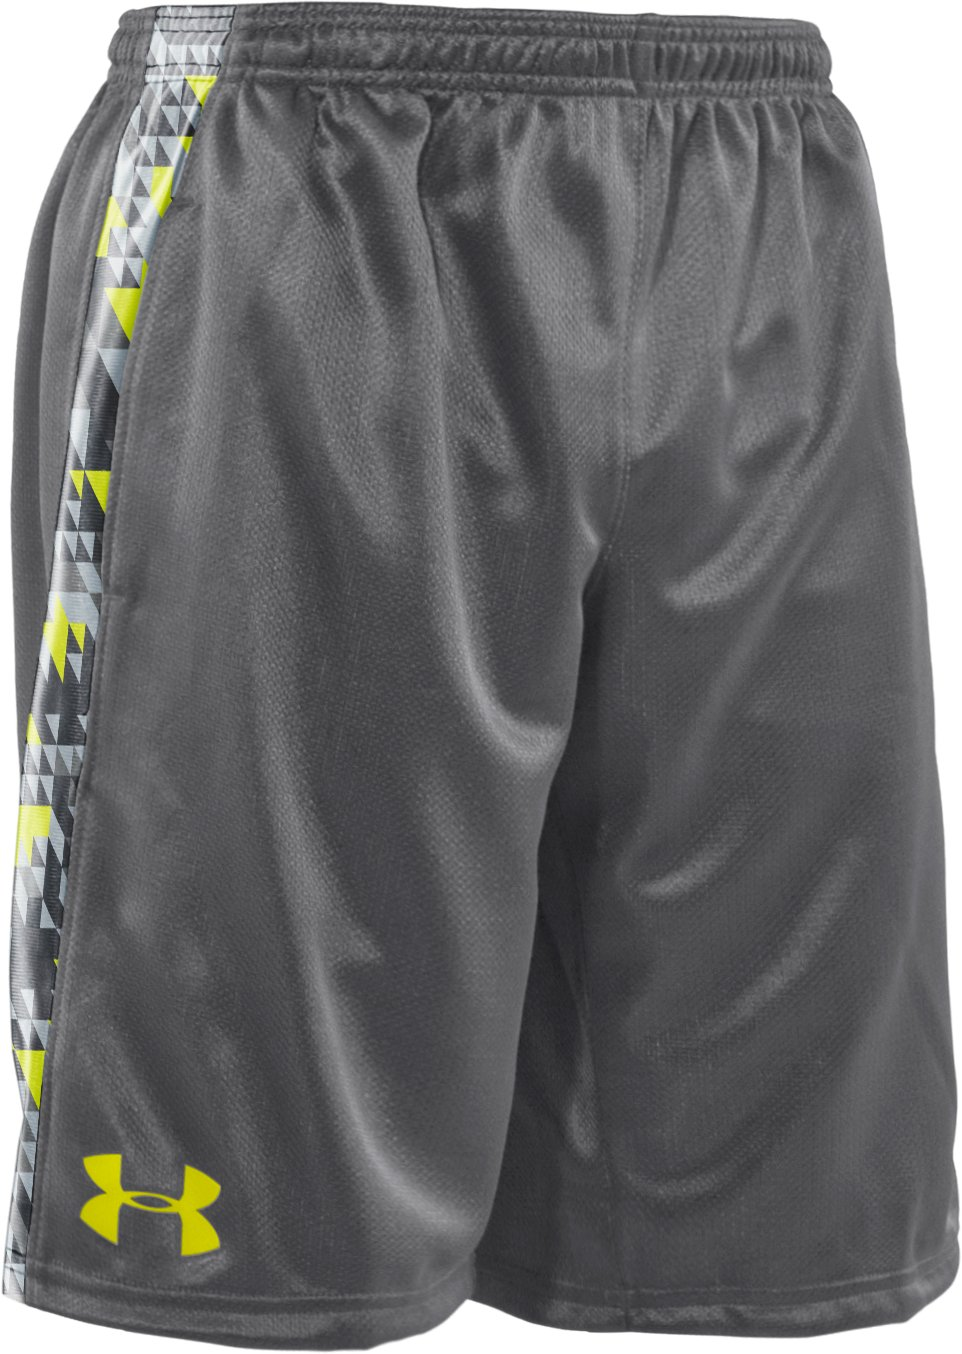 "Boys' UA Ultimate Printed 9"" Shorts, Graphite, zoomed image"